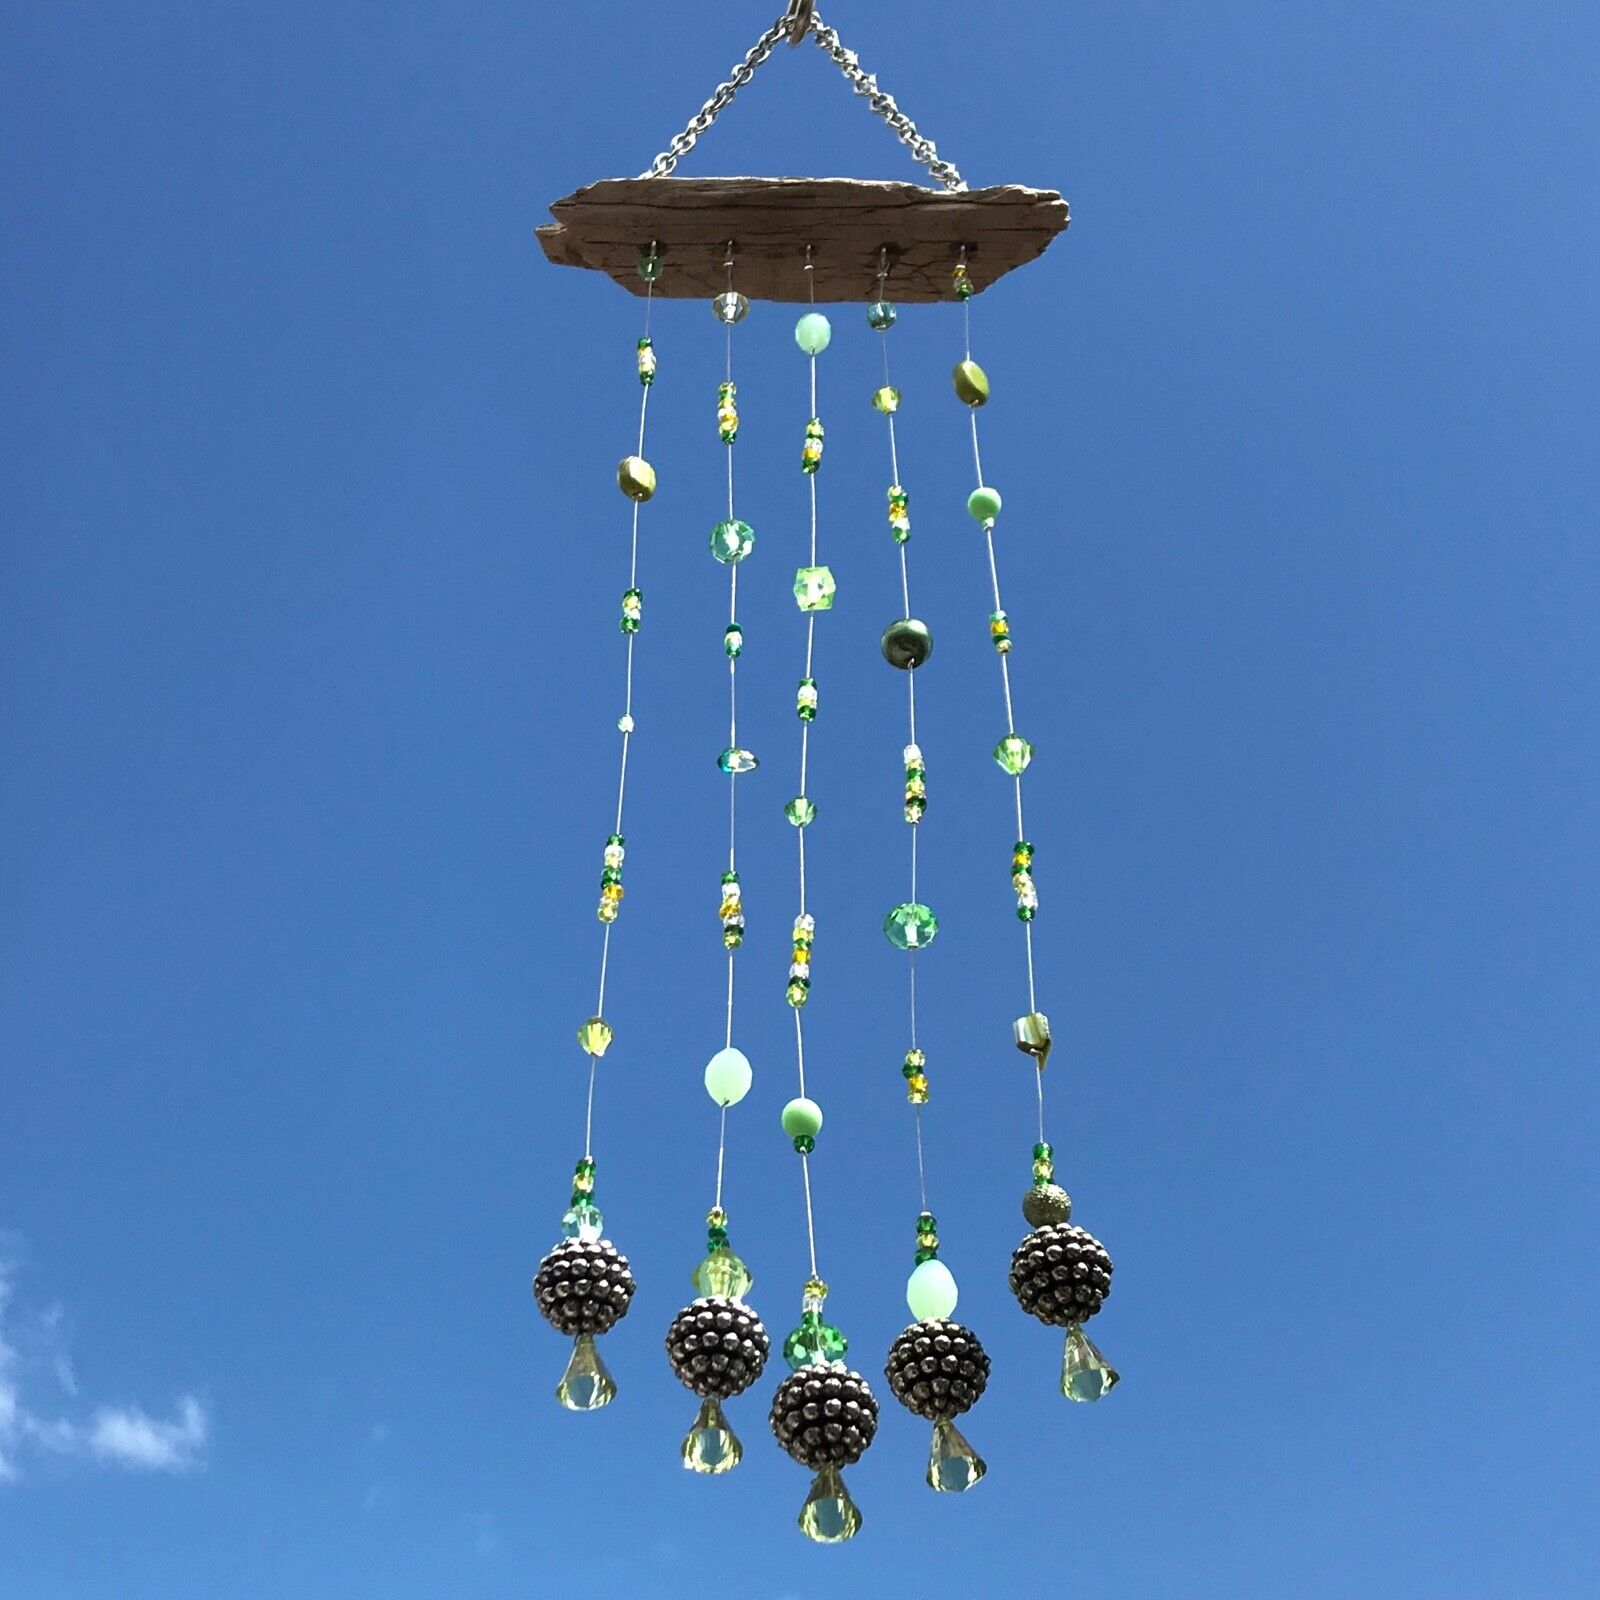 New Rustic Beaded Wind Chime Hanging Mobile ~ Green and Silver Colour ~ Long